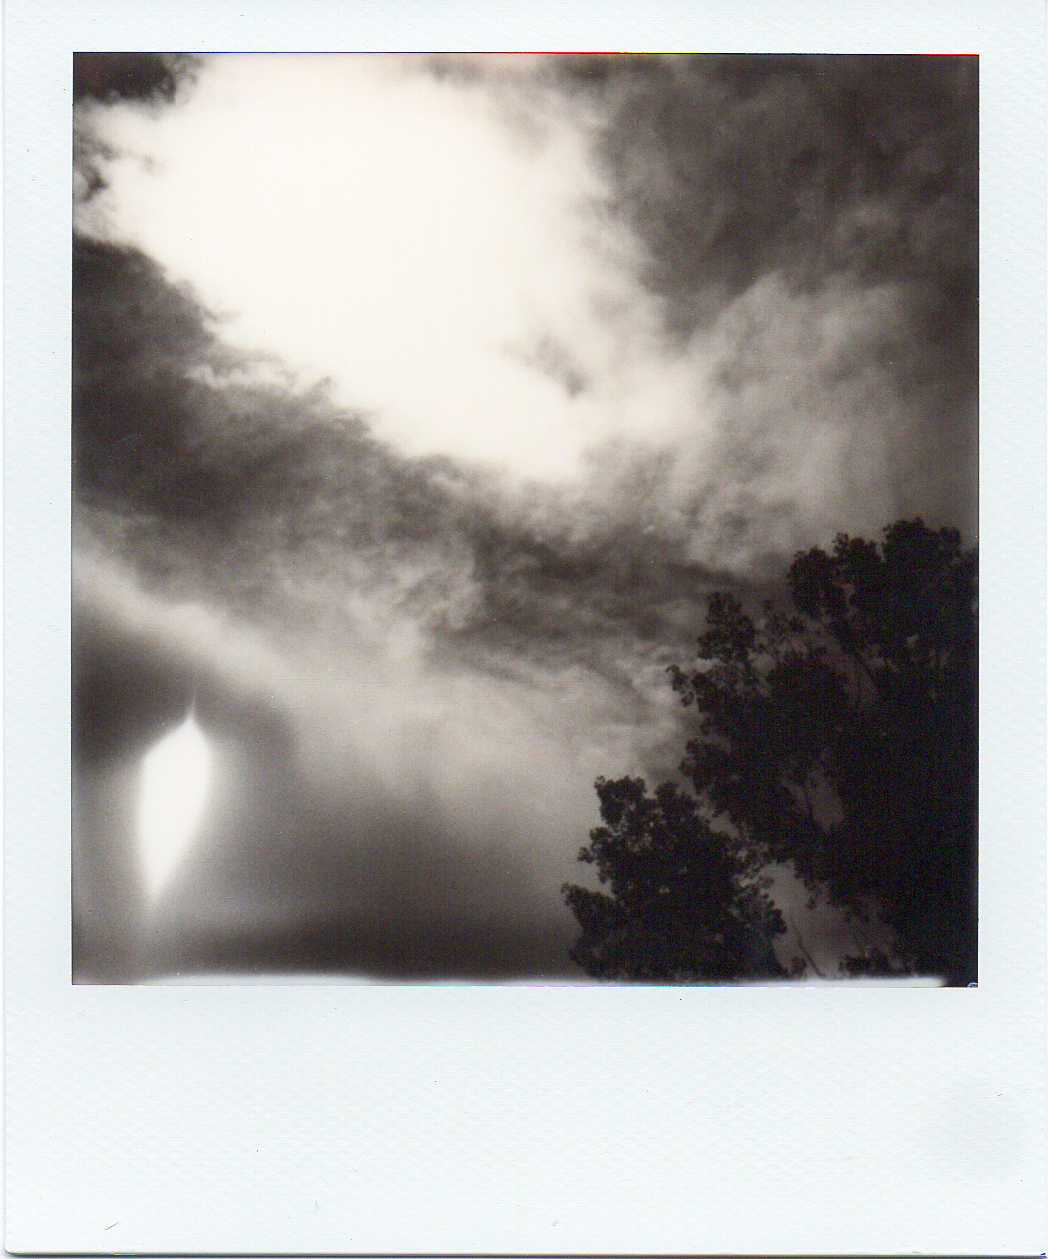 eclipse_polaroid001_web.jpg